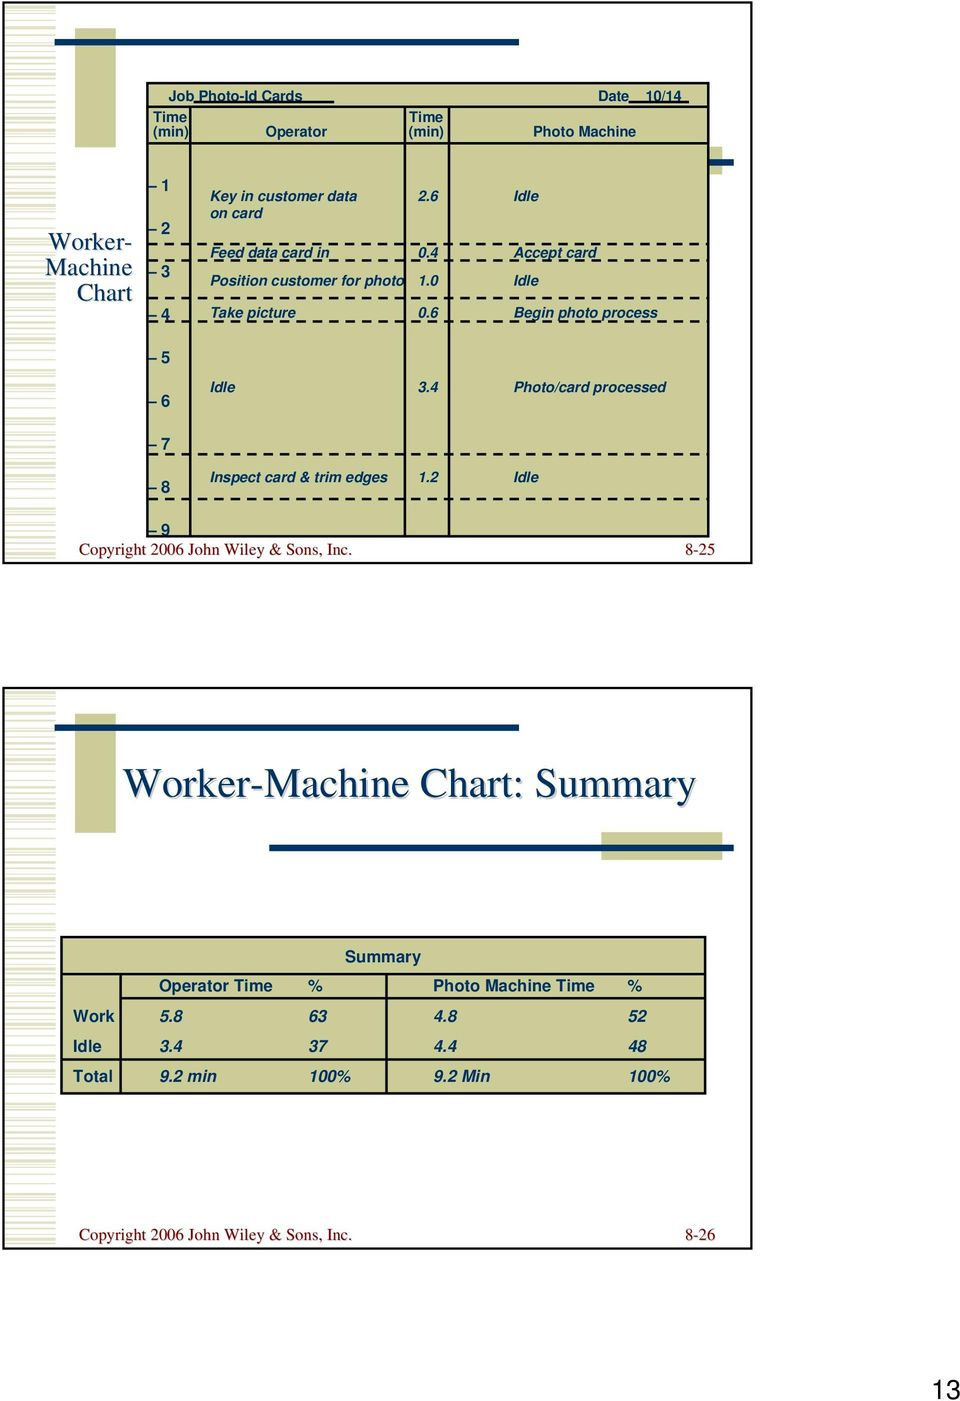 Chapter 8 Human Resources Operations Management 5 Th Edition Printable Maslow39s Pyramid Diagram Hierarchy Of Needs Chart 4 Photo Card Processed 7 Inspect Trim Edges 12 Idle 9 Copyright